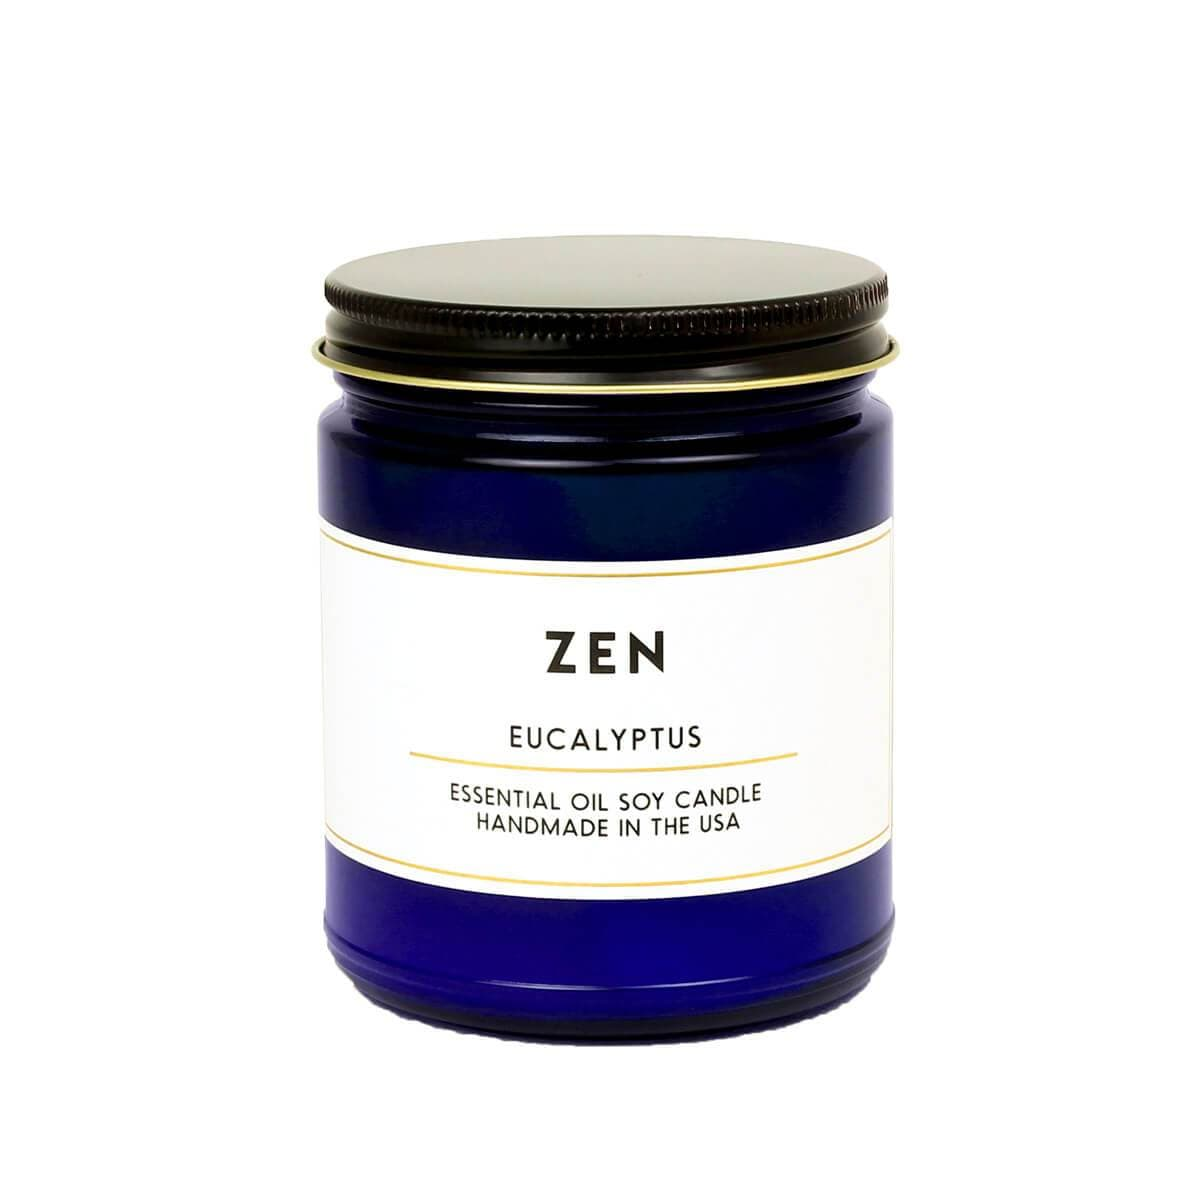 ACDC Candle Co Candles & Home Fragrance Zen Eucalyptus Essential Oil Aromatherapy Candle